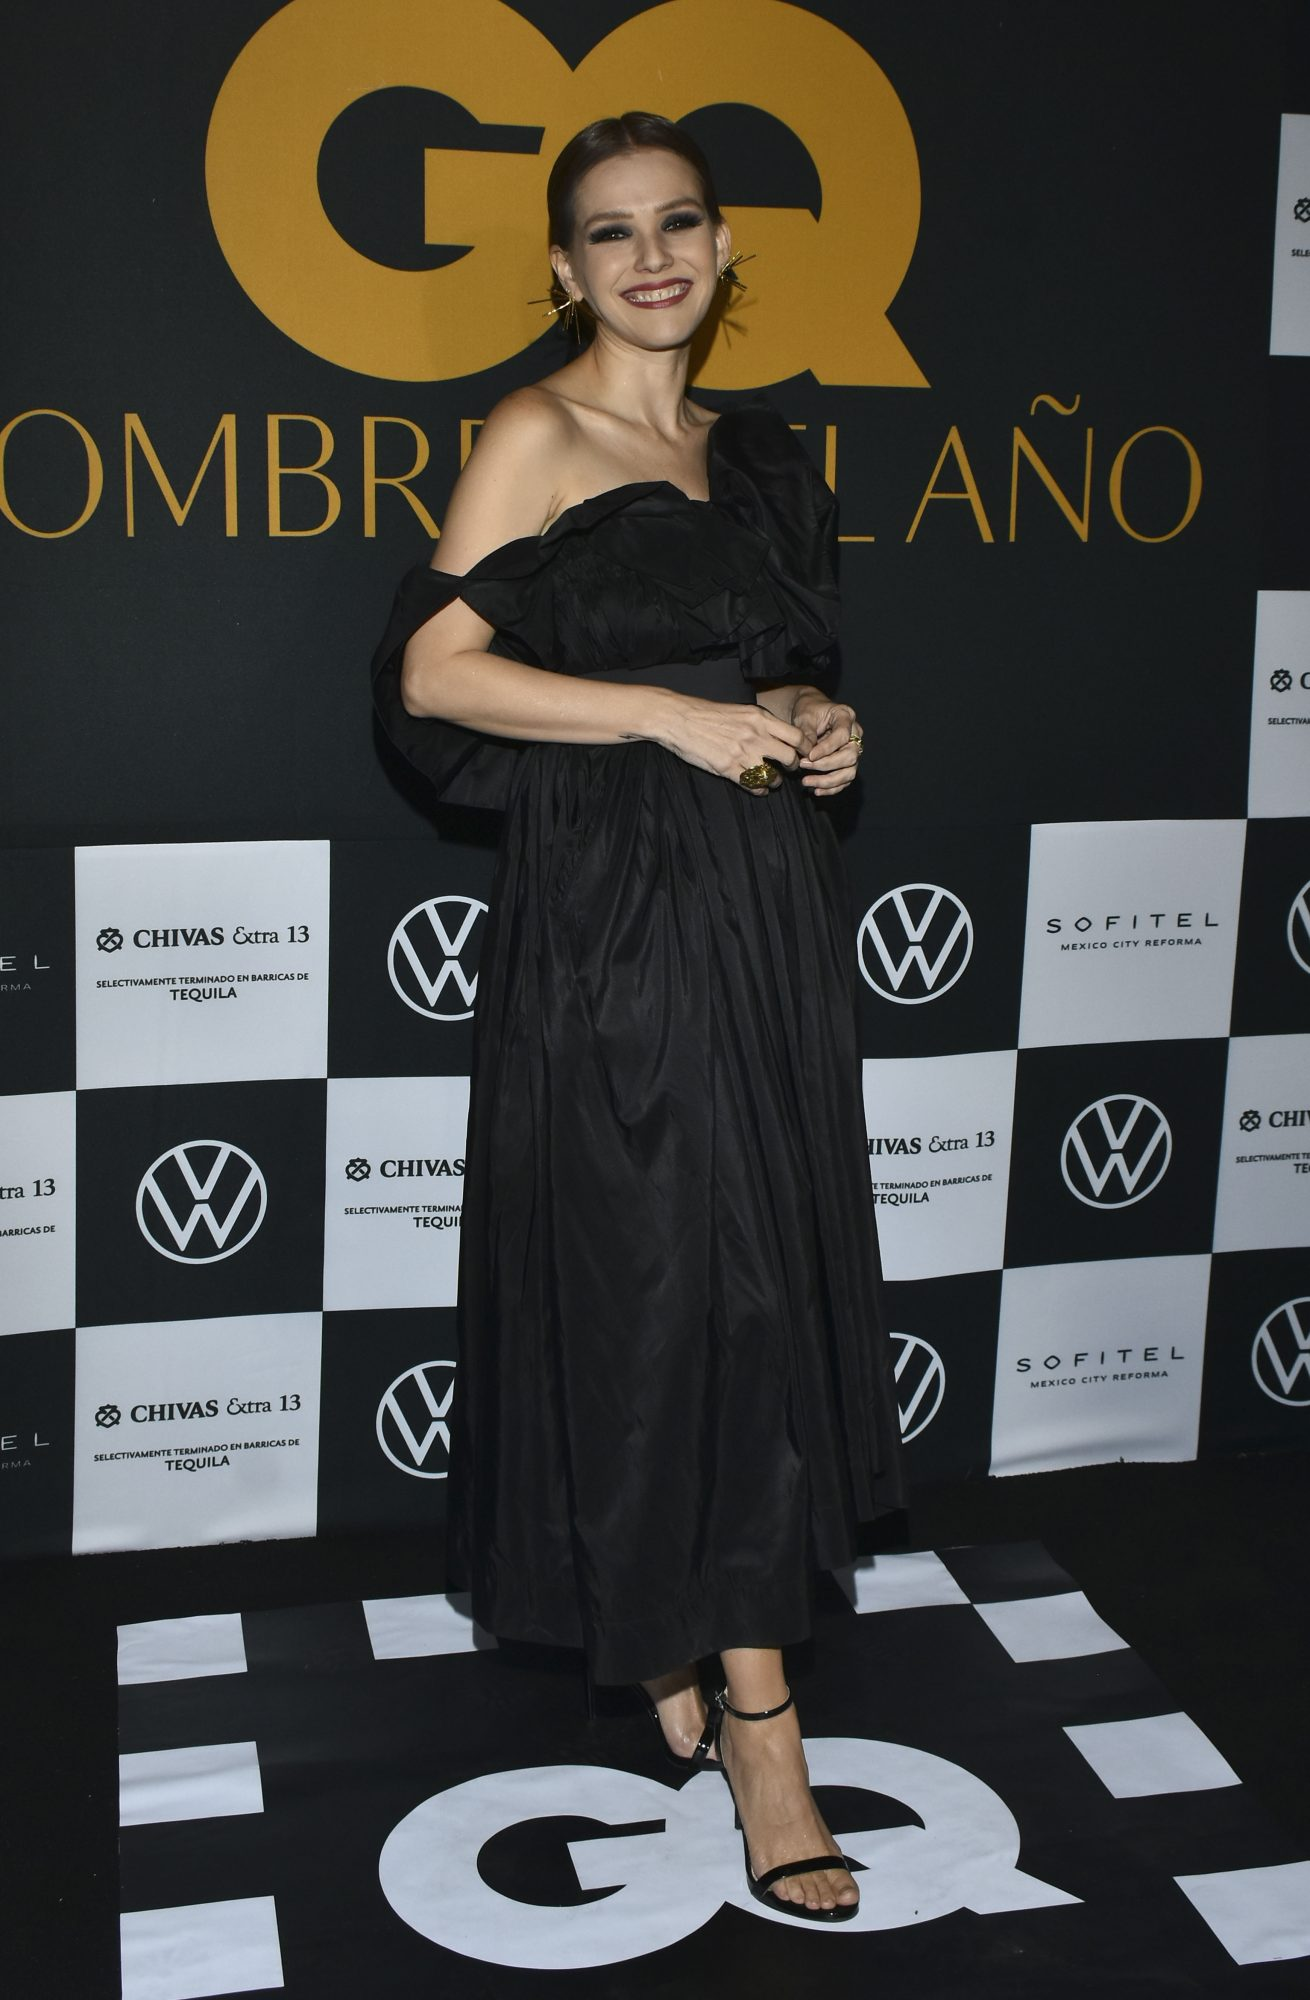 Kika Edgar, vestido negro, fashion